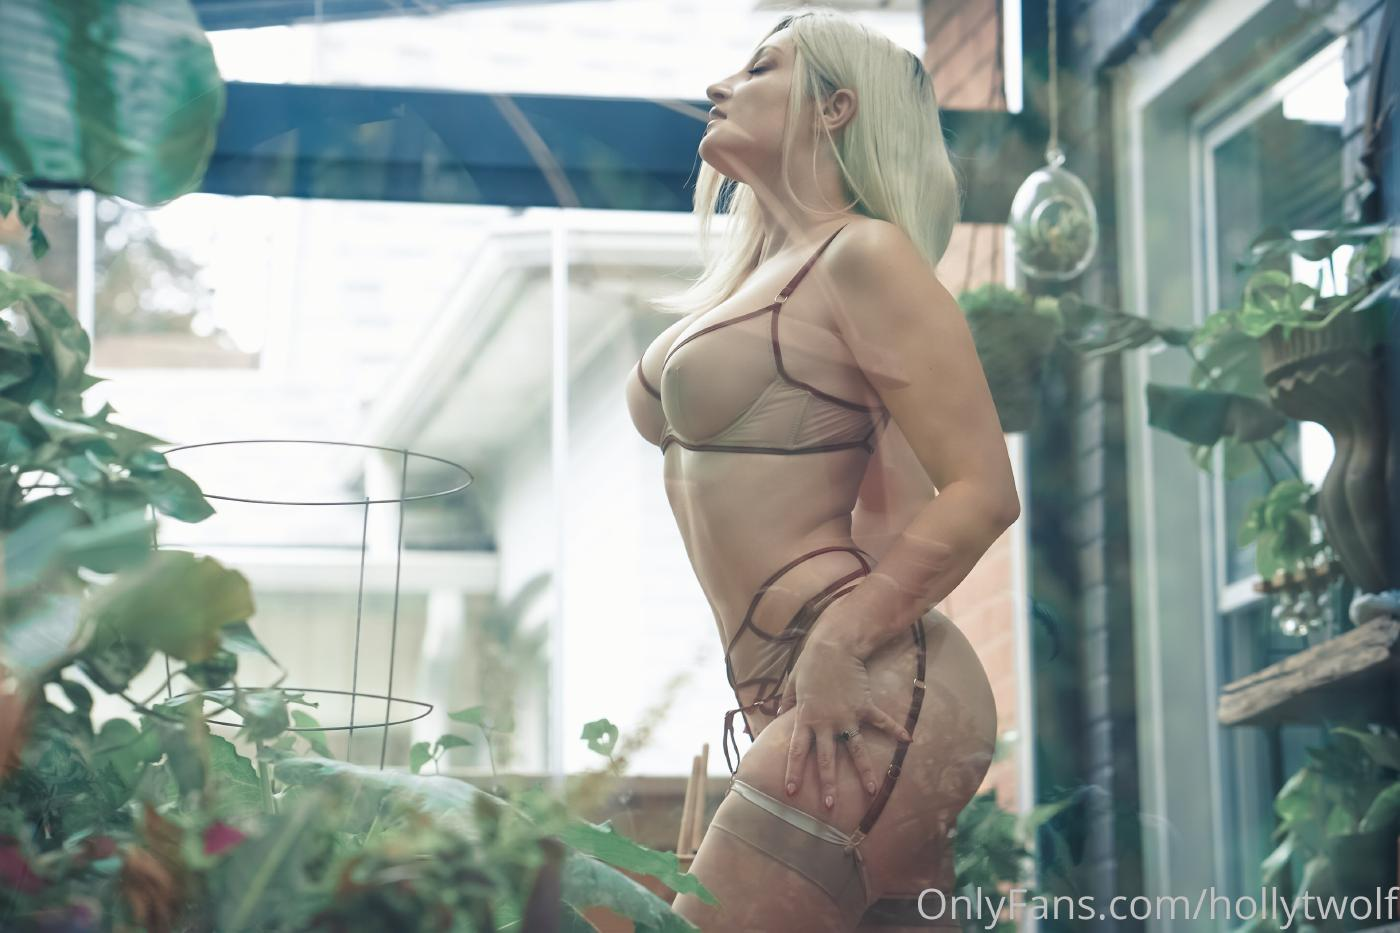 Holly Wolf Onlyfans Content Leaked 0031